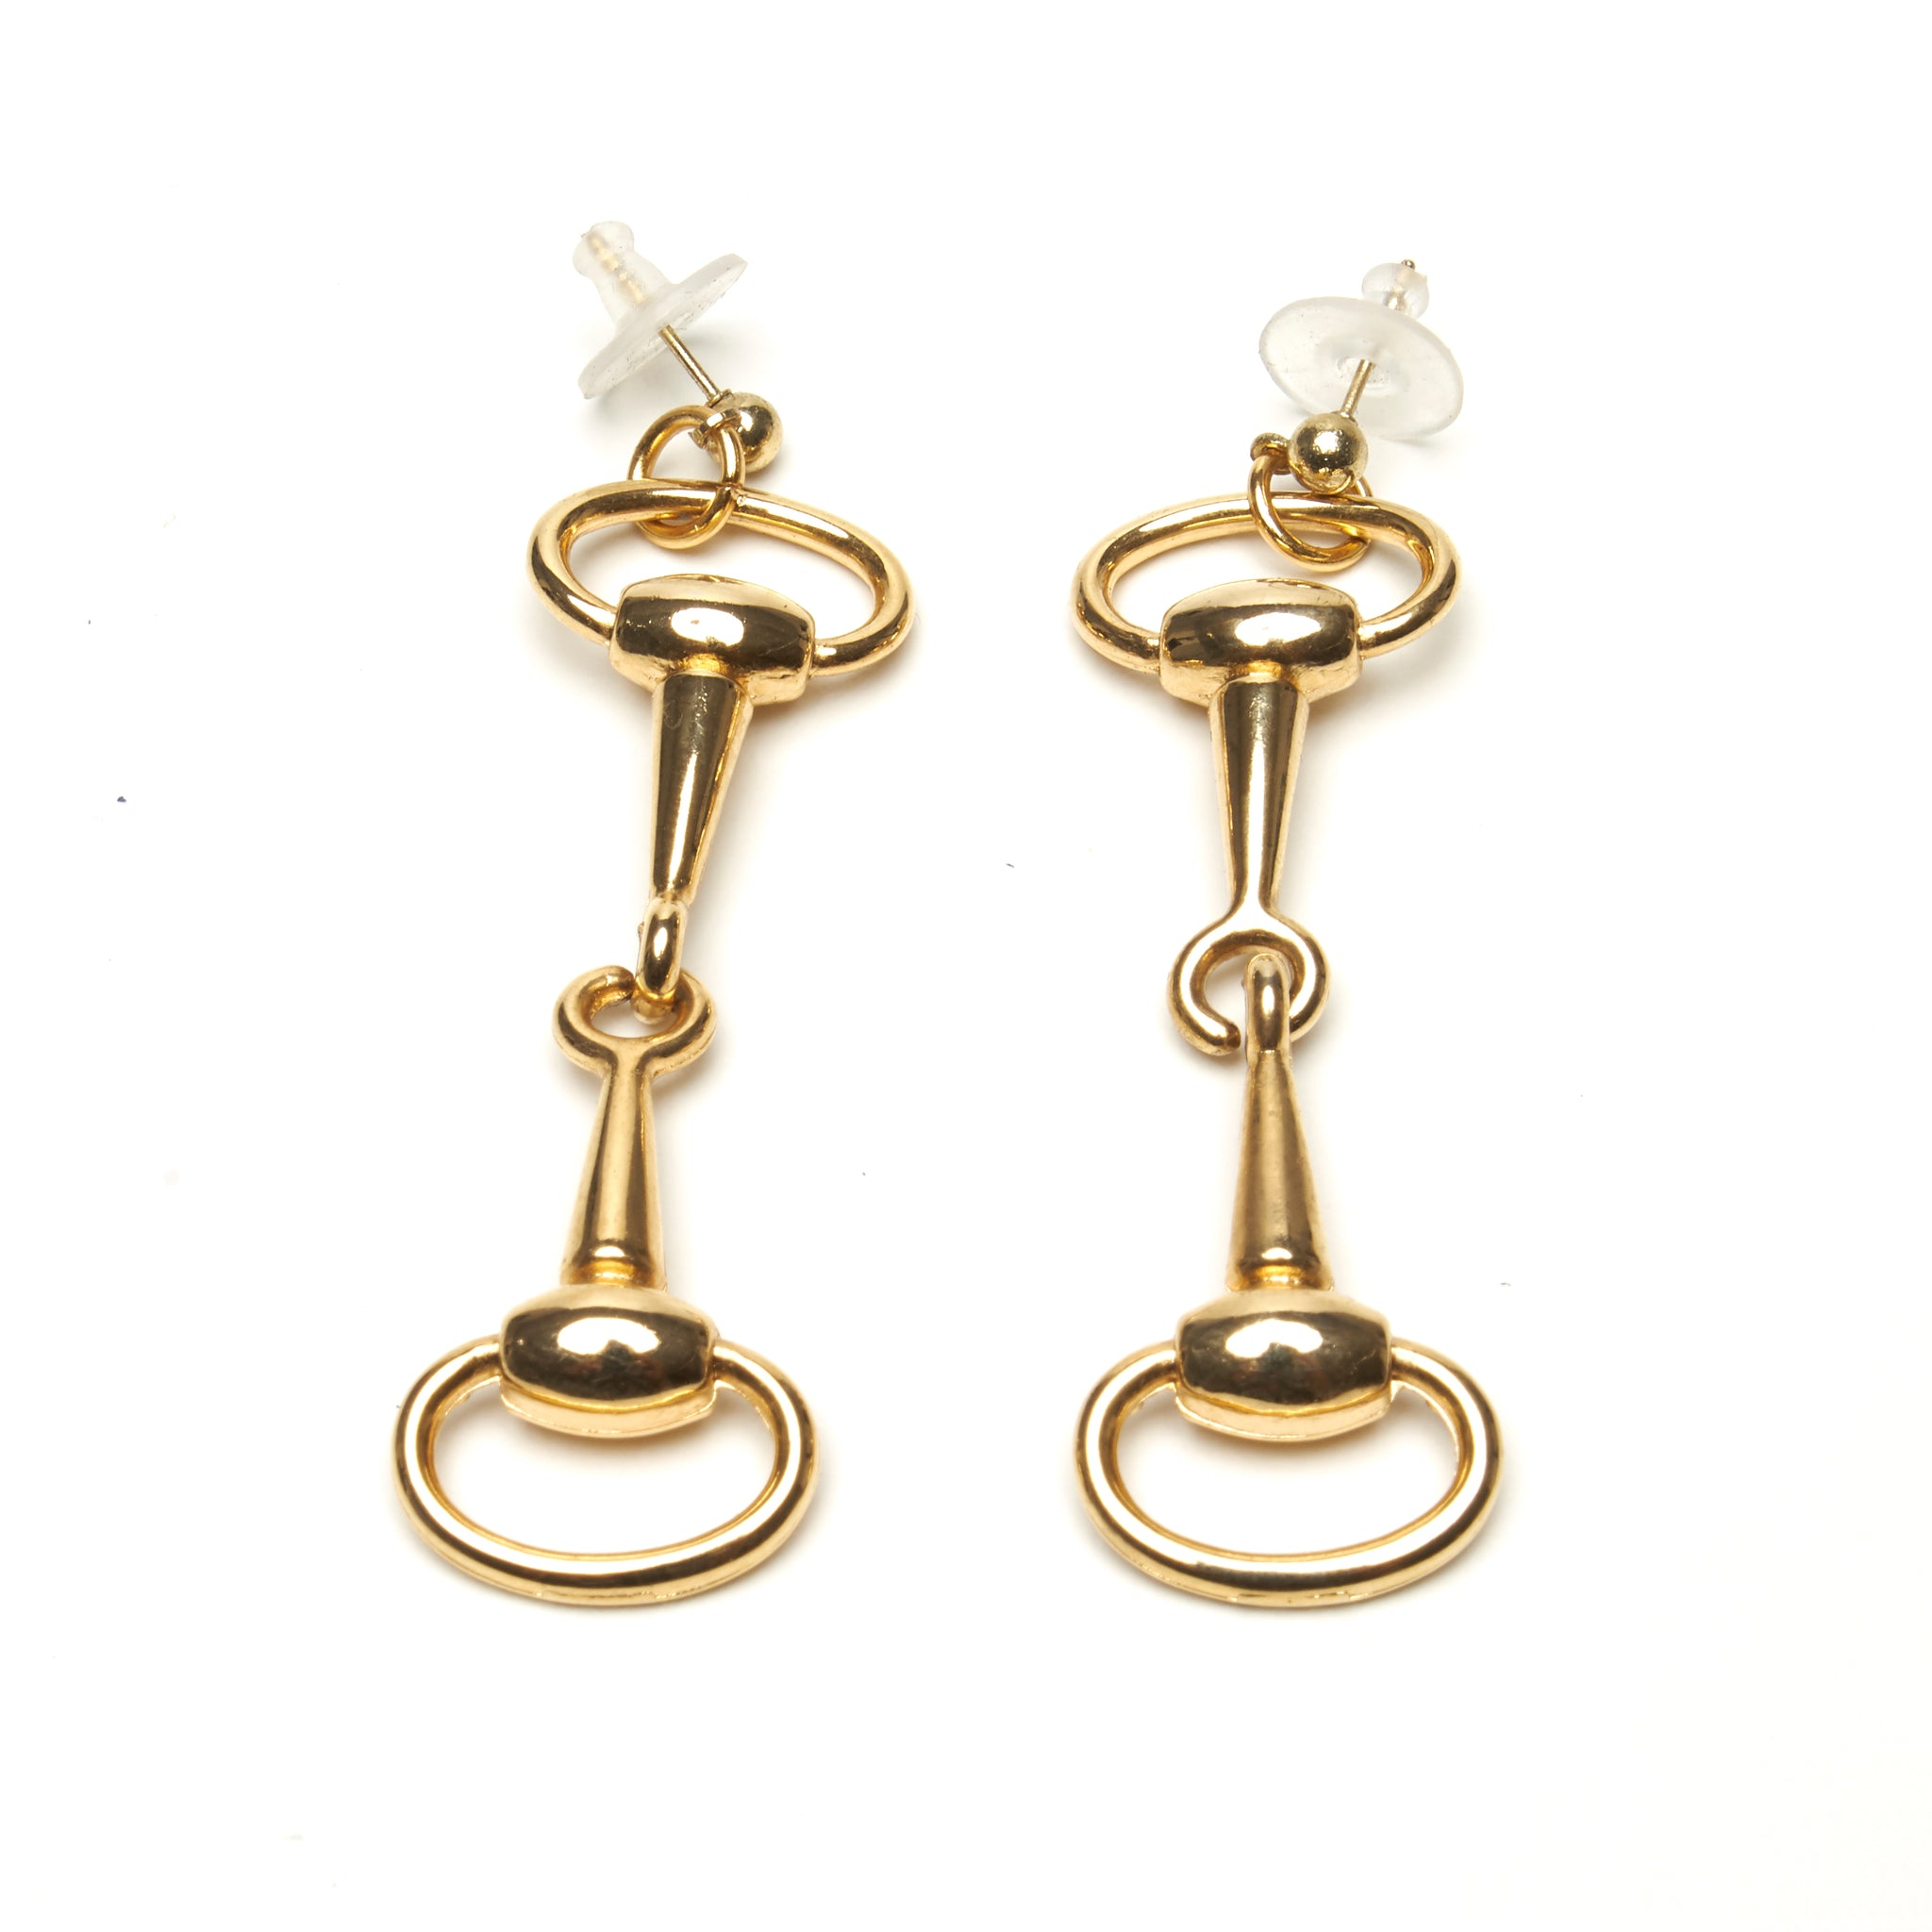 D-RING HORSE-BIT EARRINGS BY NYET JEWELRY.